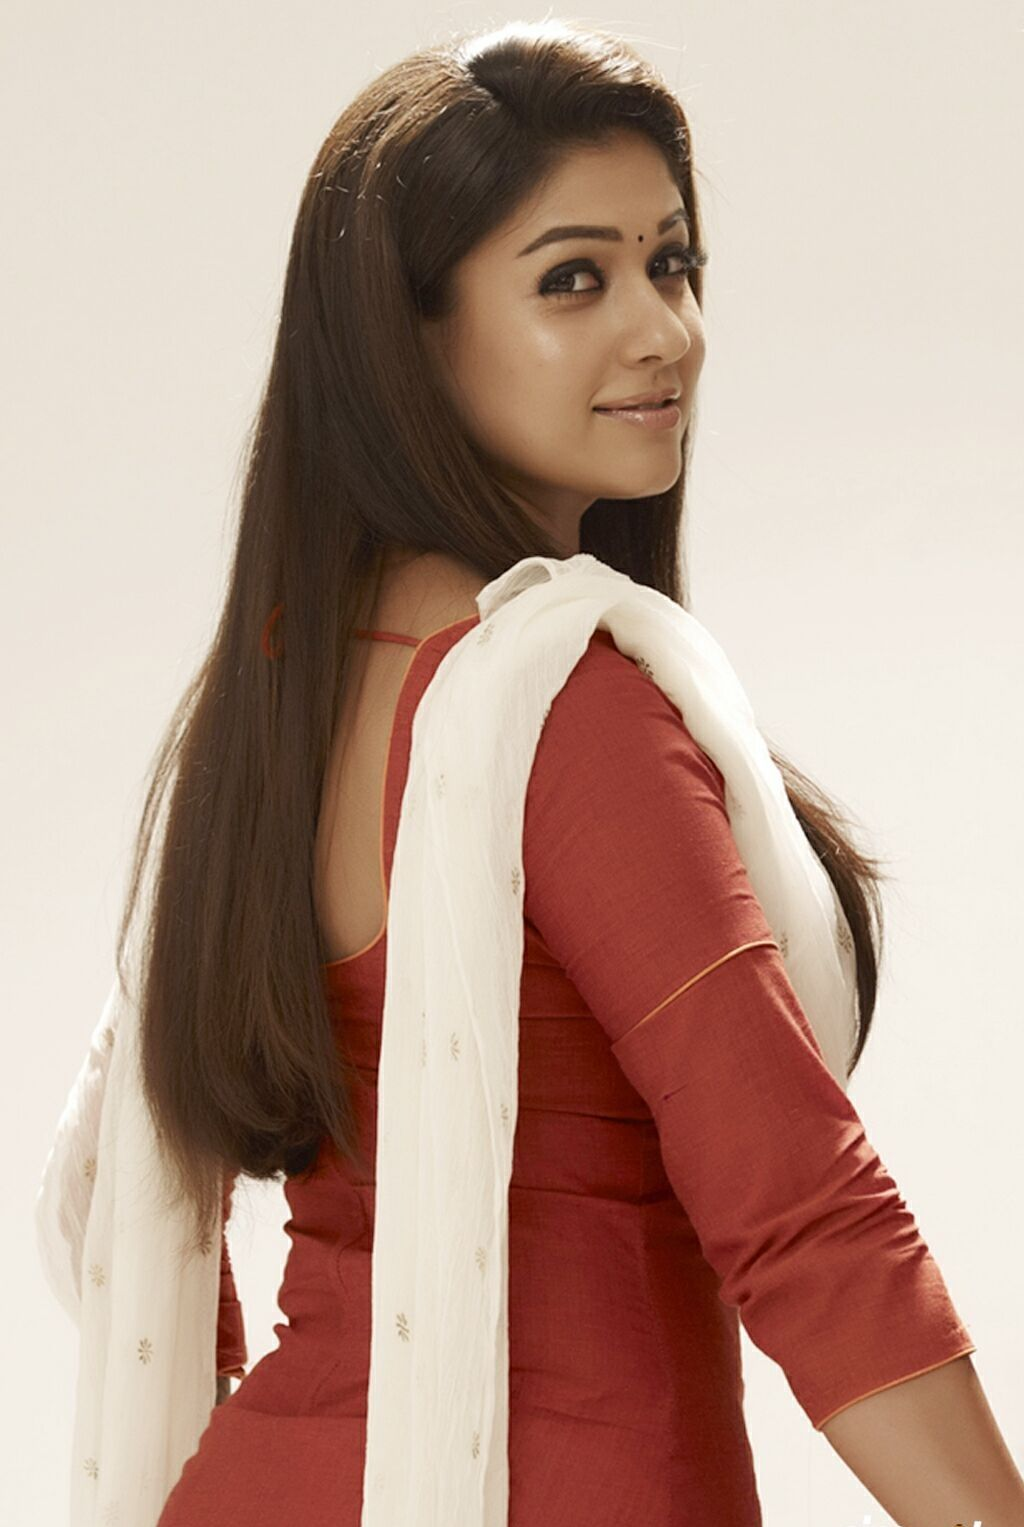 Nayanthara Latest Very Hot Photos 2015 Images Hd Free Download Sexy Tamil Actress Latesttamilcinemanews 2015 In Tanglish Asdlk Com 28